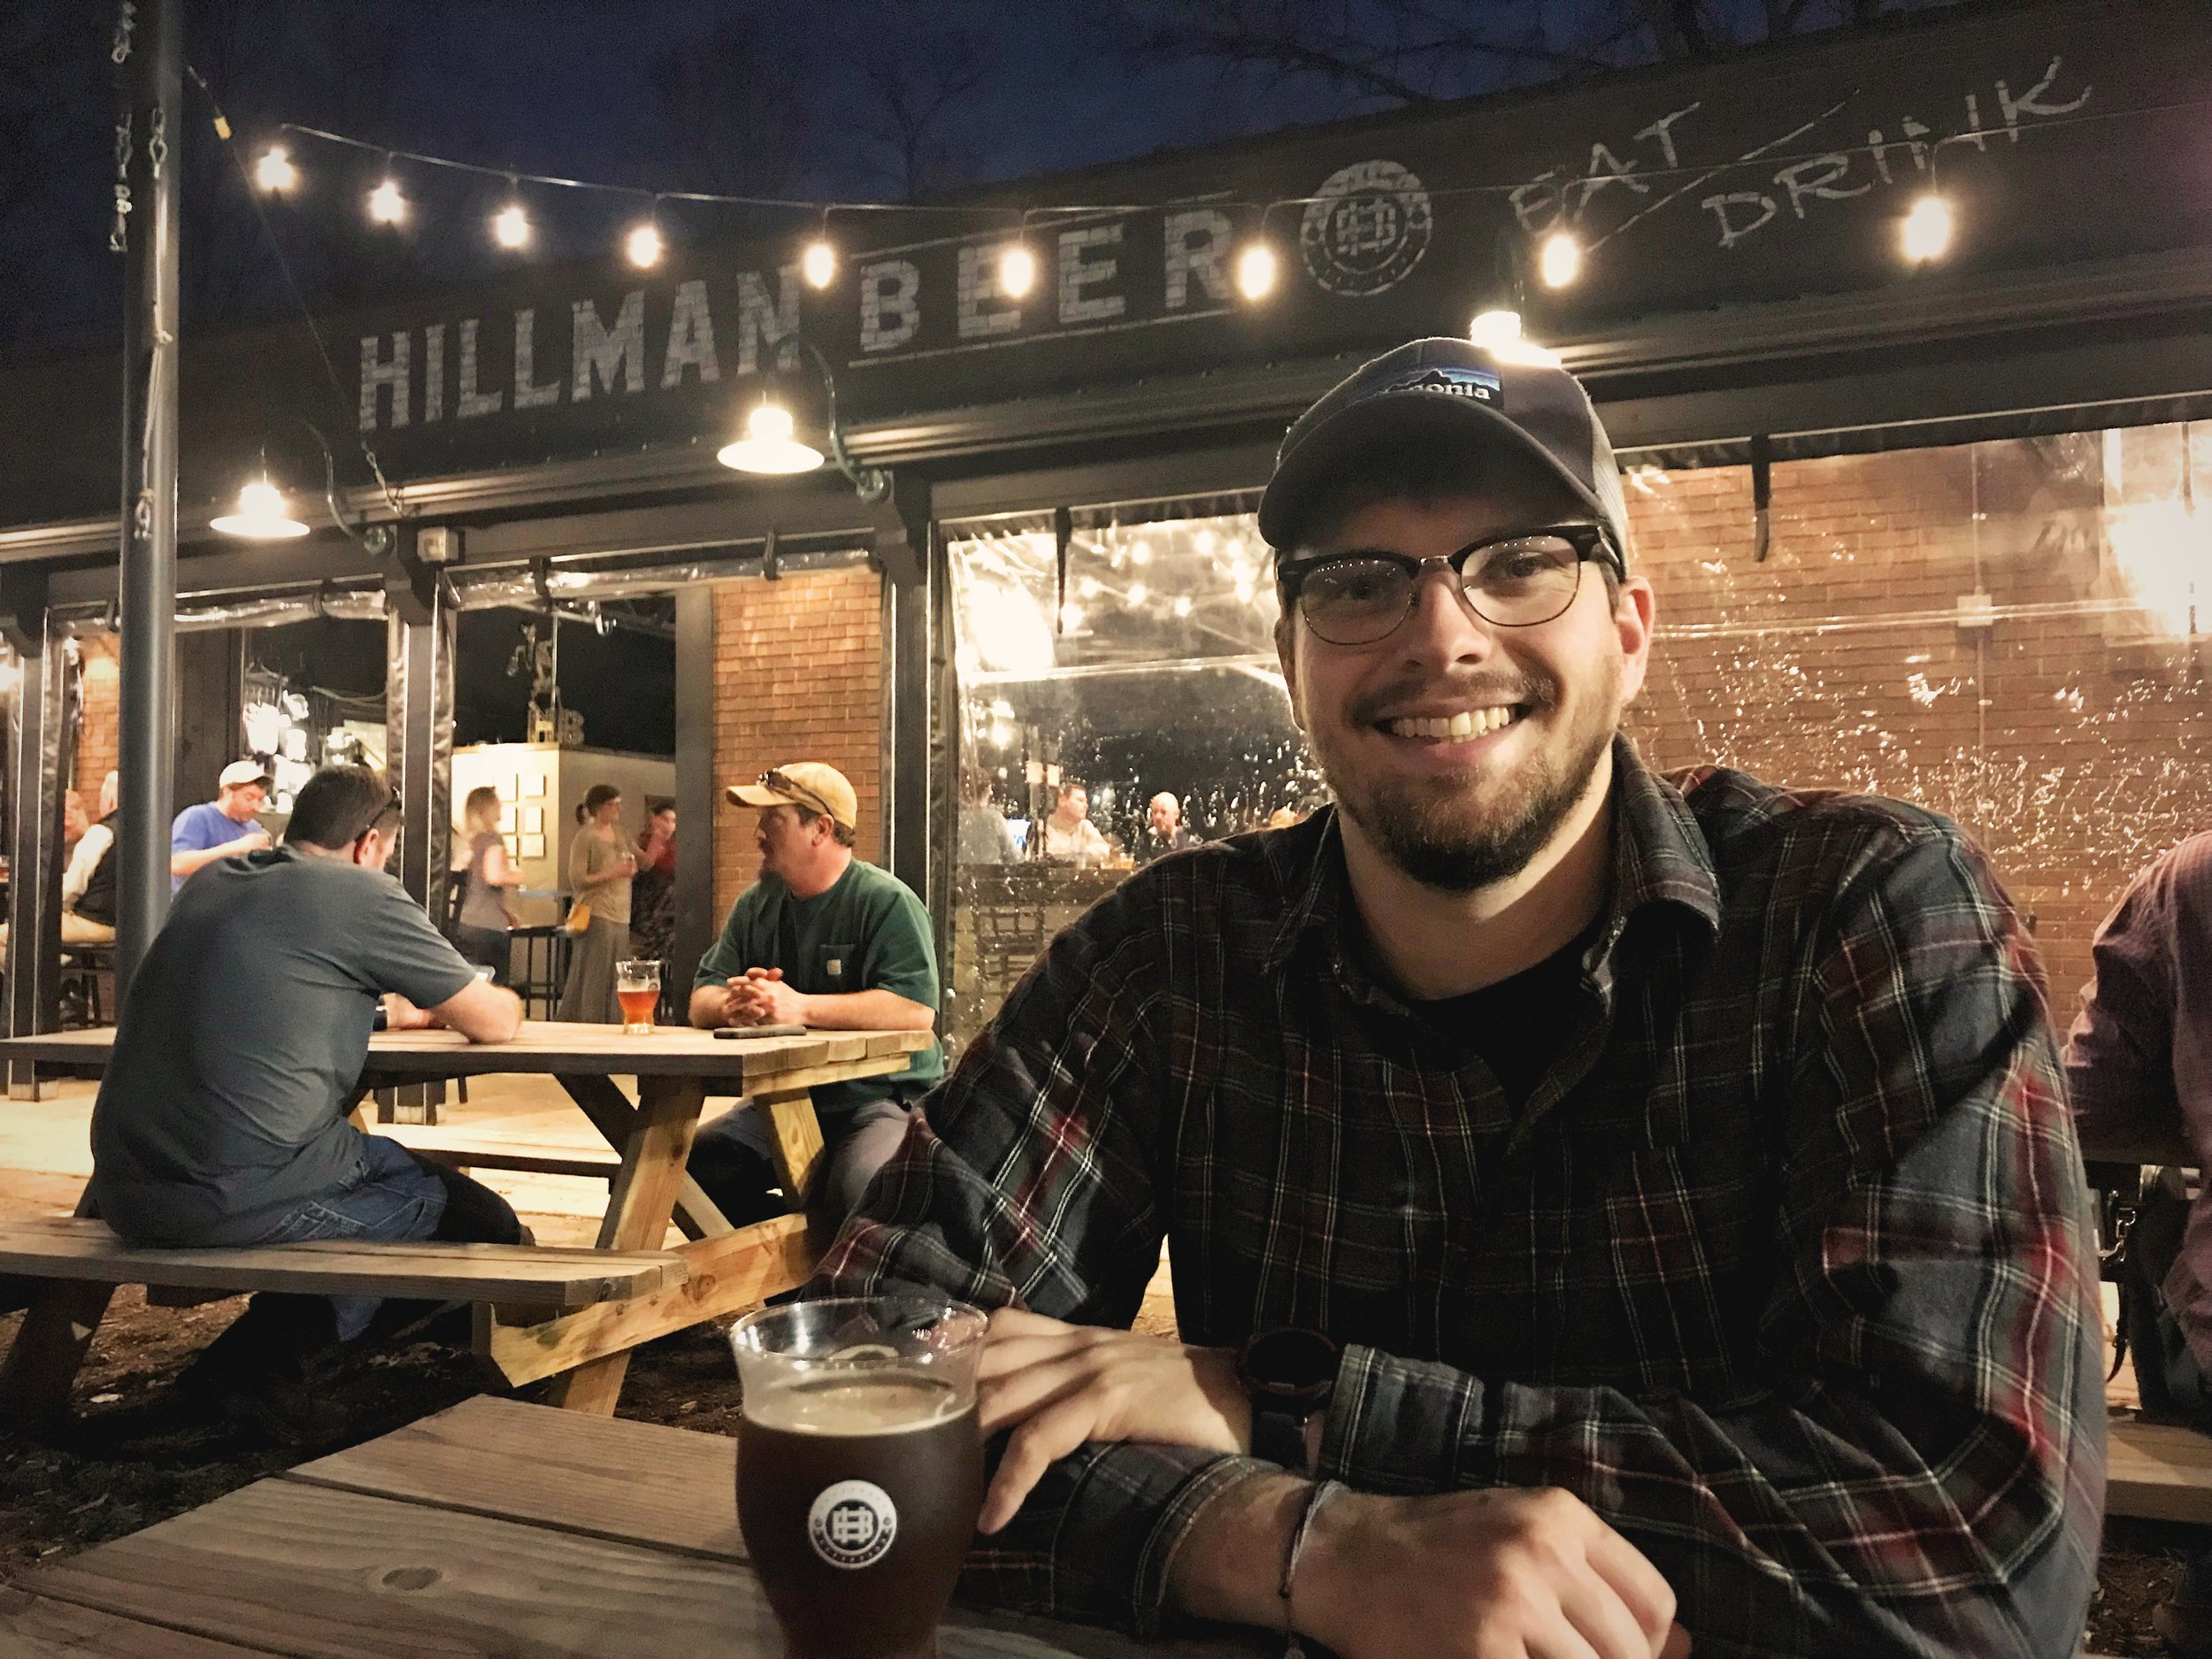 We'd definitely recommend Hillman Beer, especially if it's warm enough to enjoy their outdoor seating.